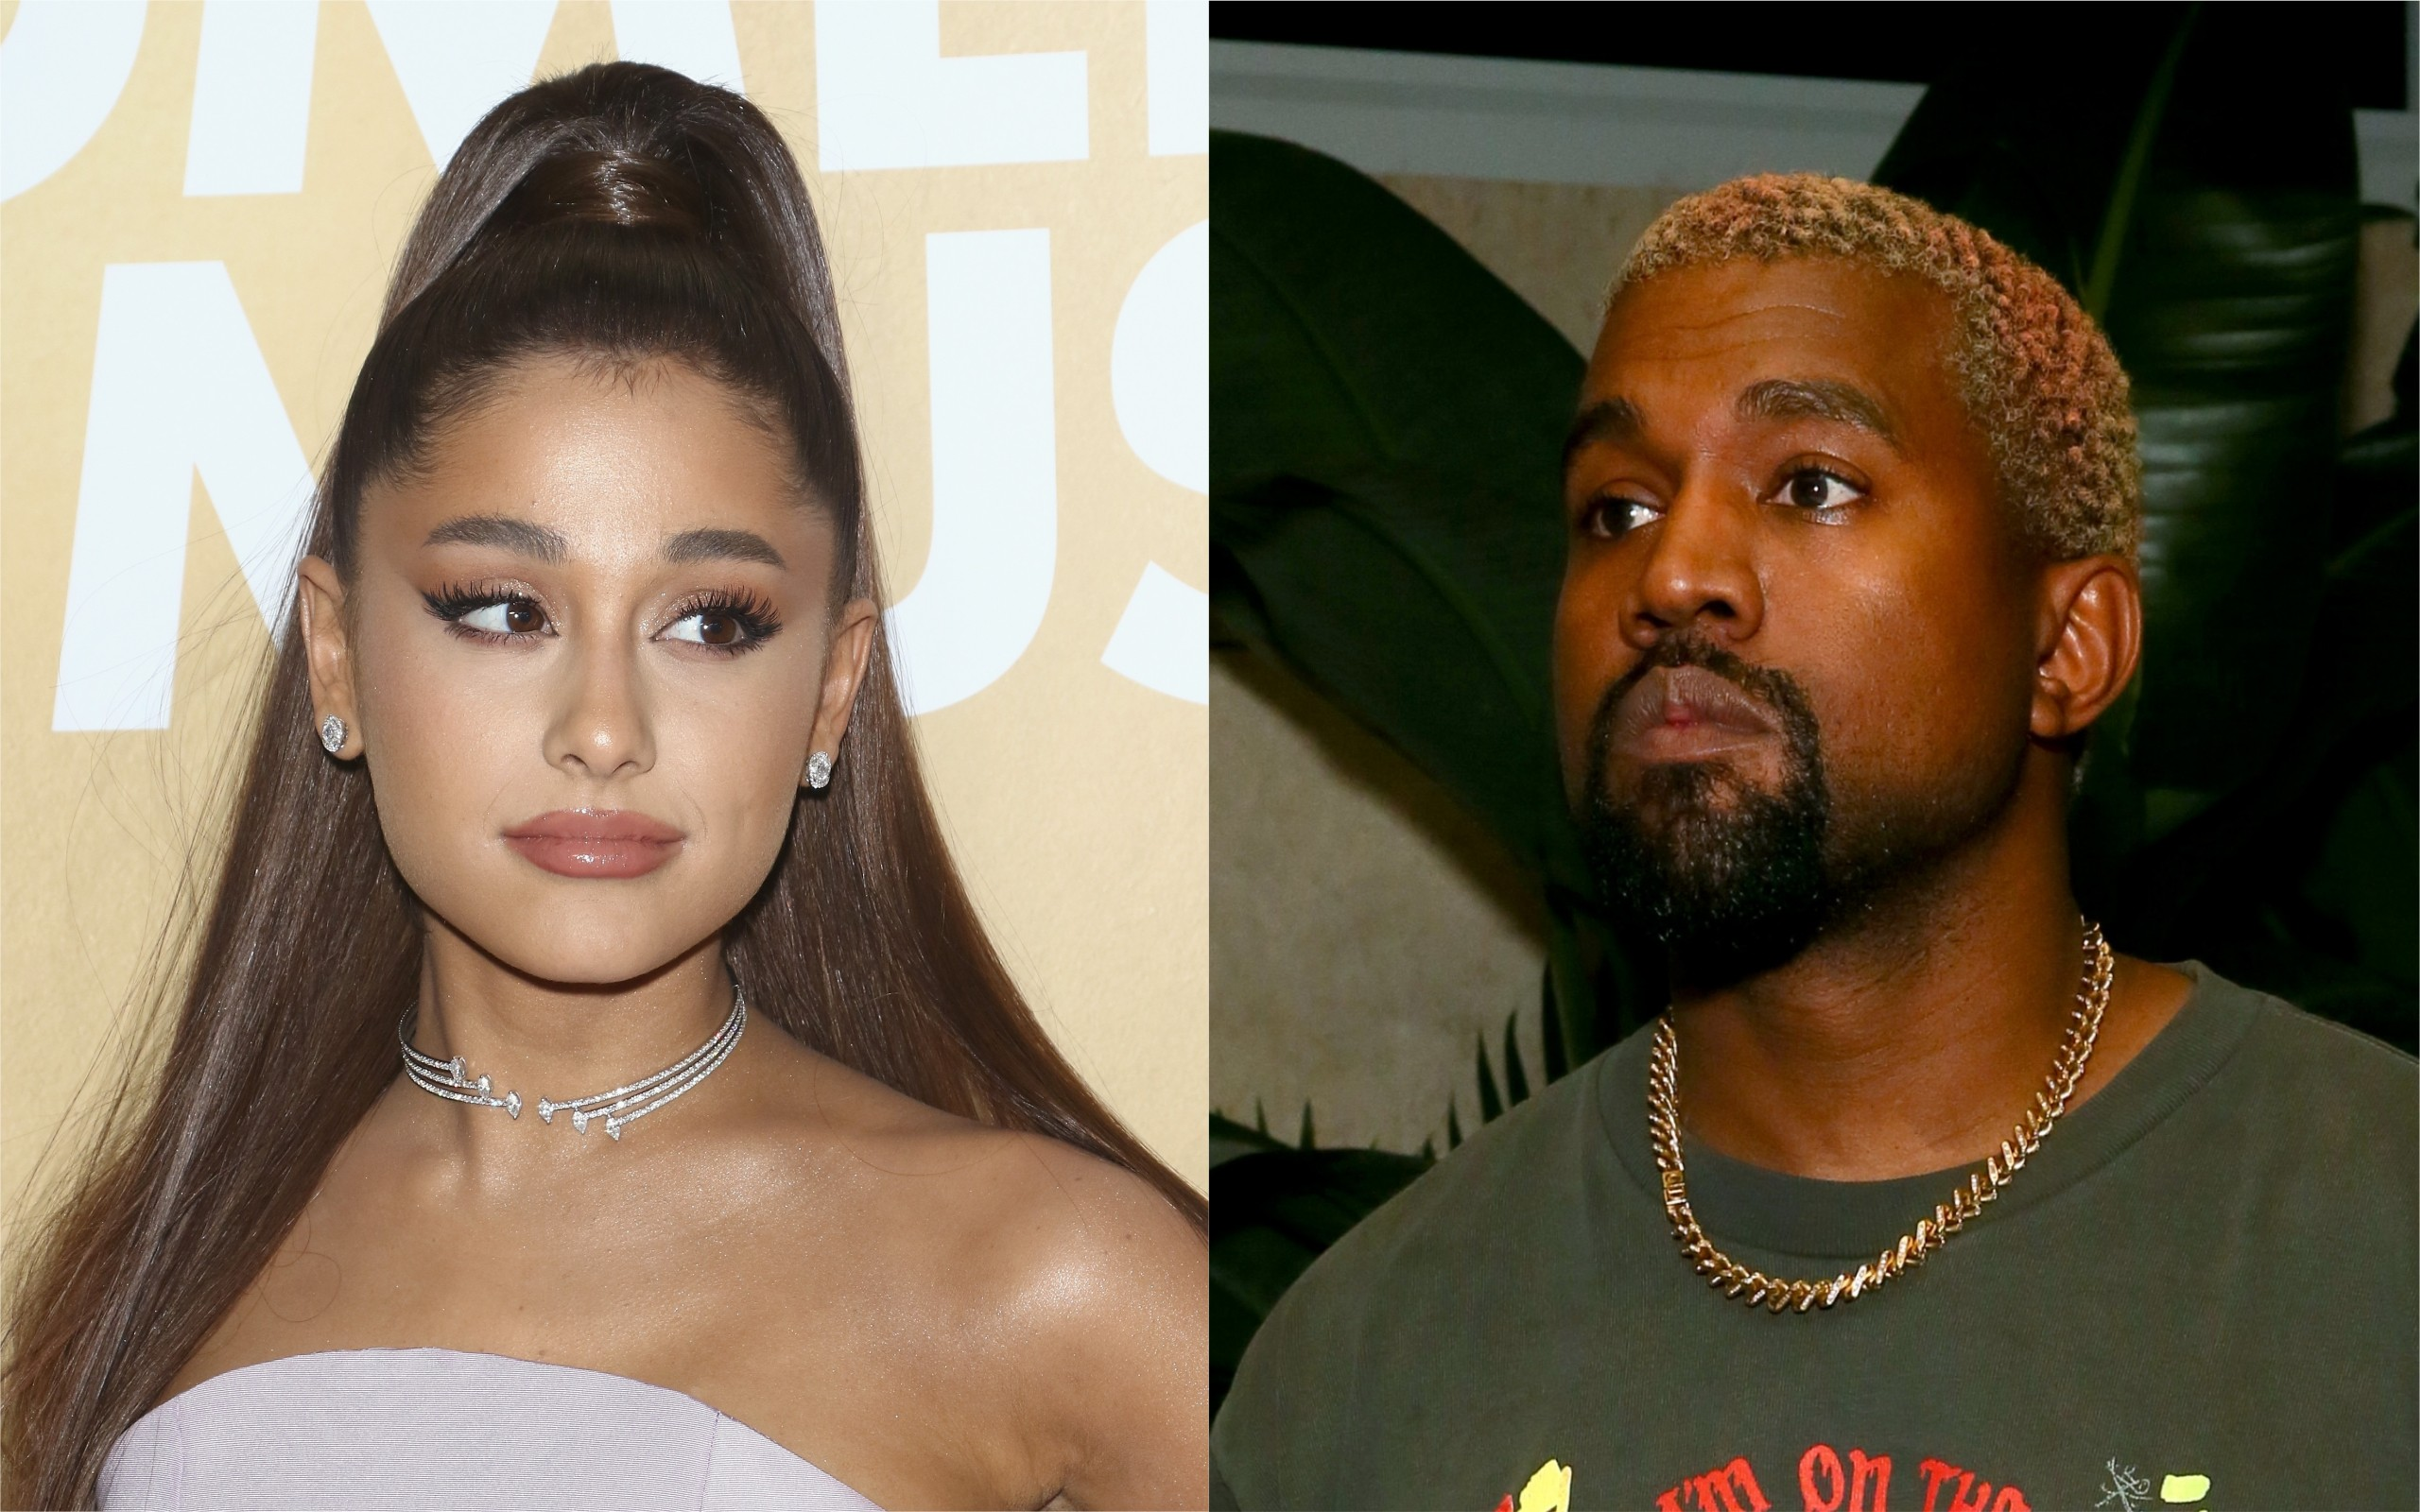 kanye-west-responds-to-ariana-grande-twitter-promote-a-song